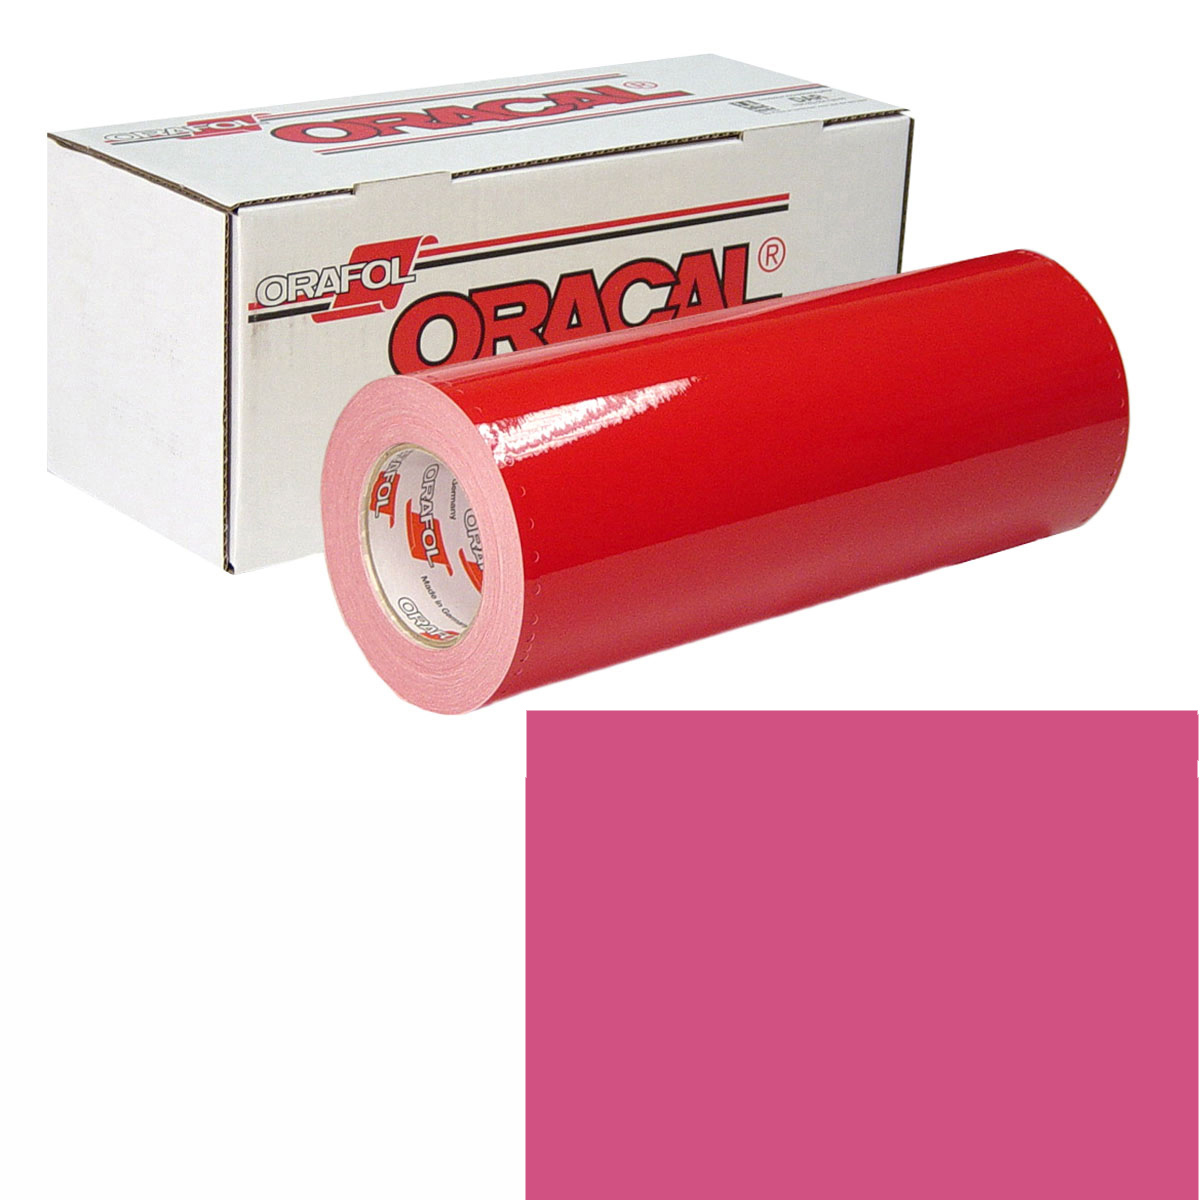 ORACAL 951 15In X 50Yd 044 Magenta